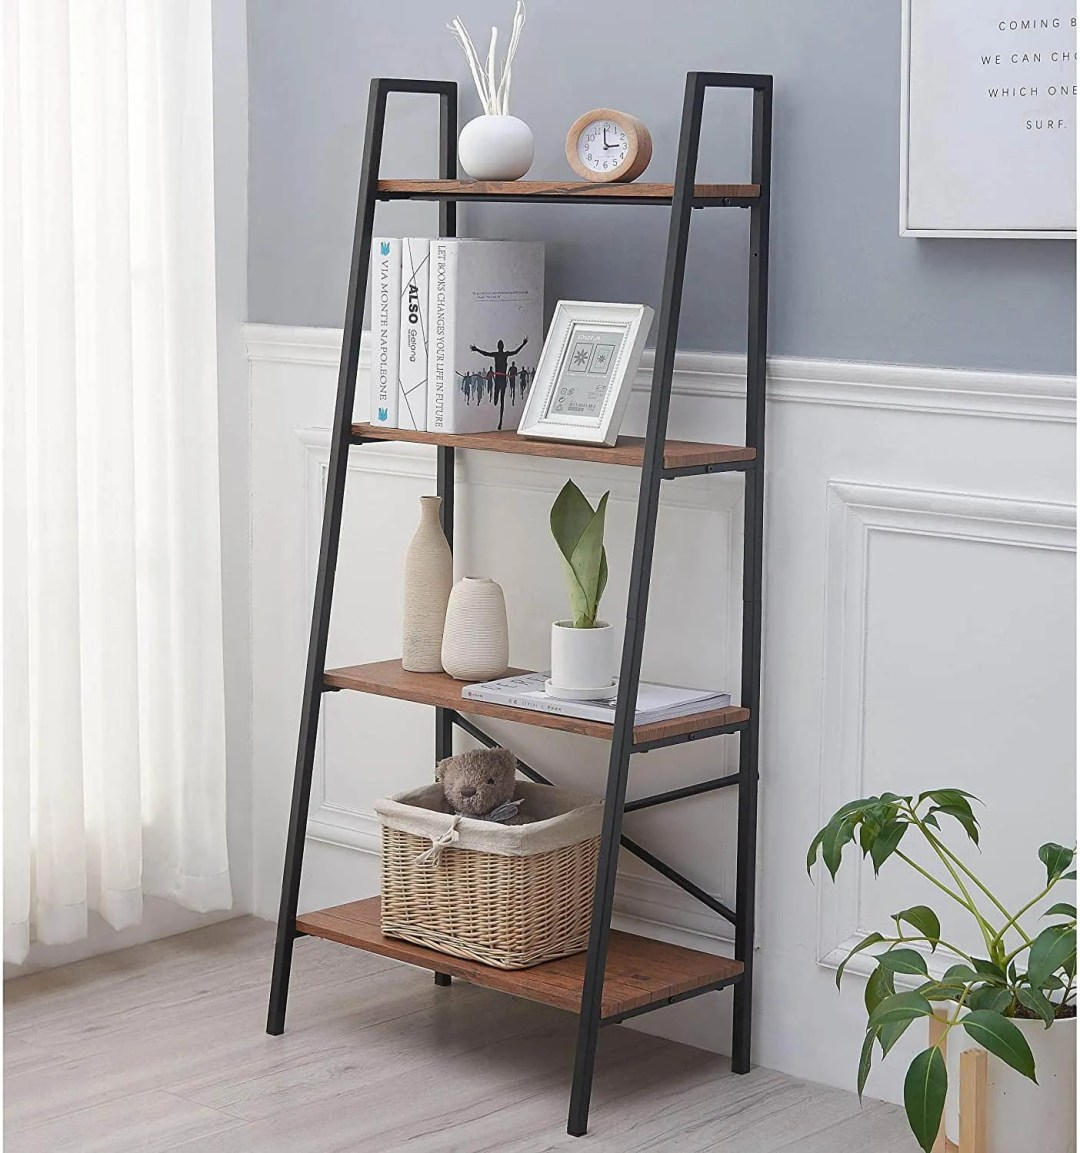 Vintage Bookshelf - home office decor ideas